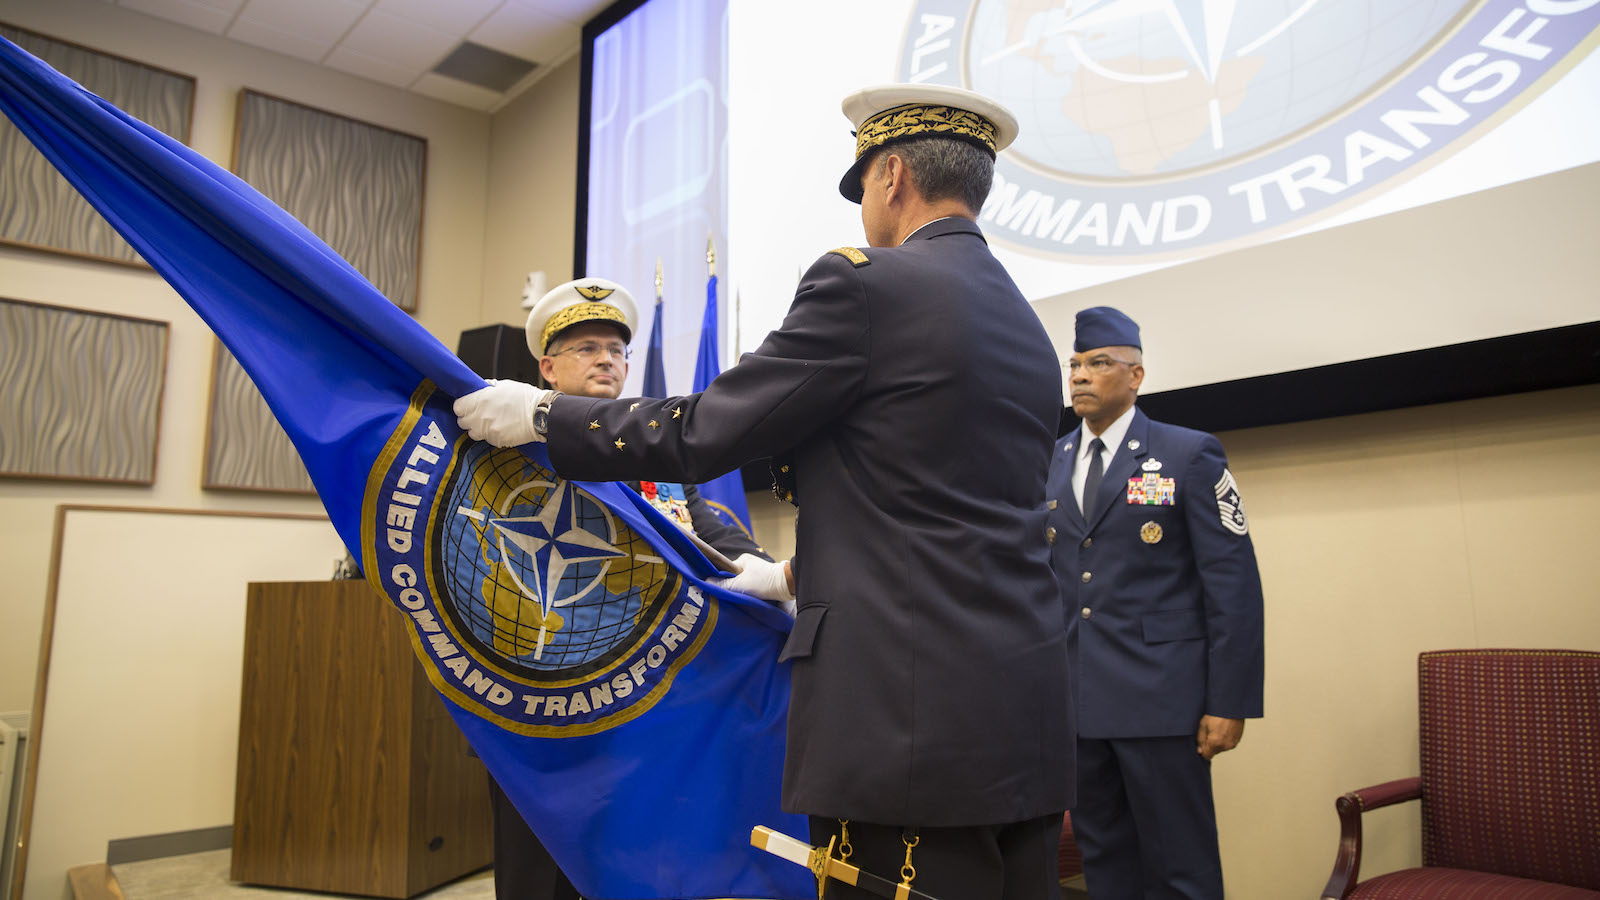 NATO's Warfare Development Command Changes Responsibility